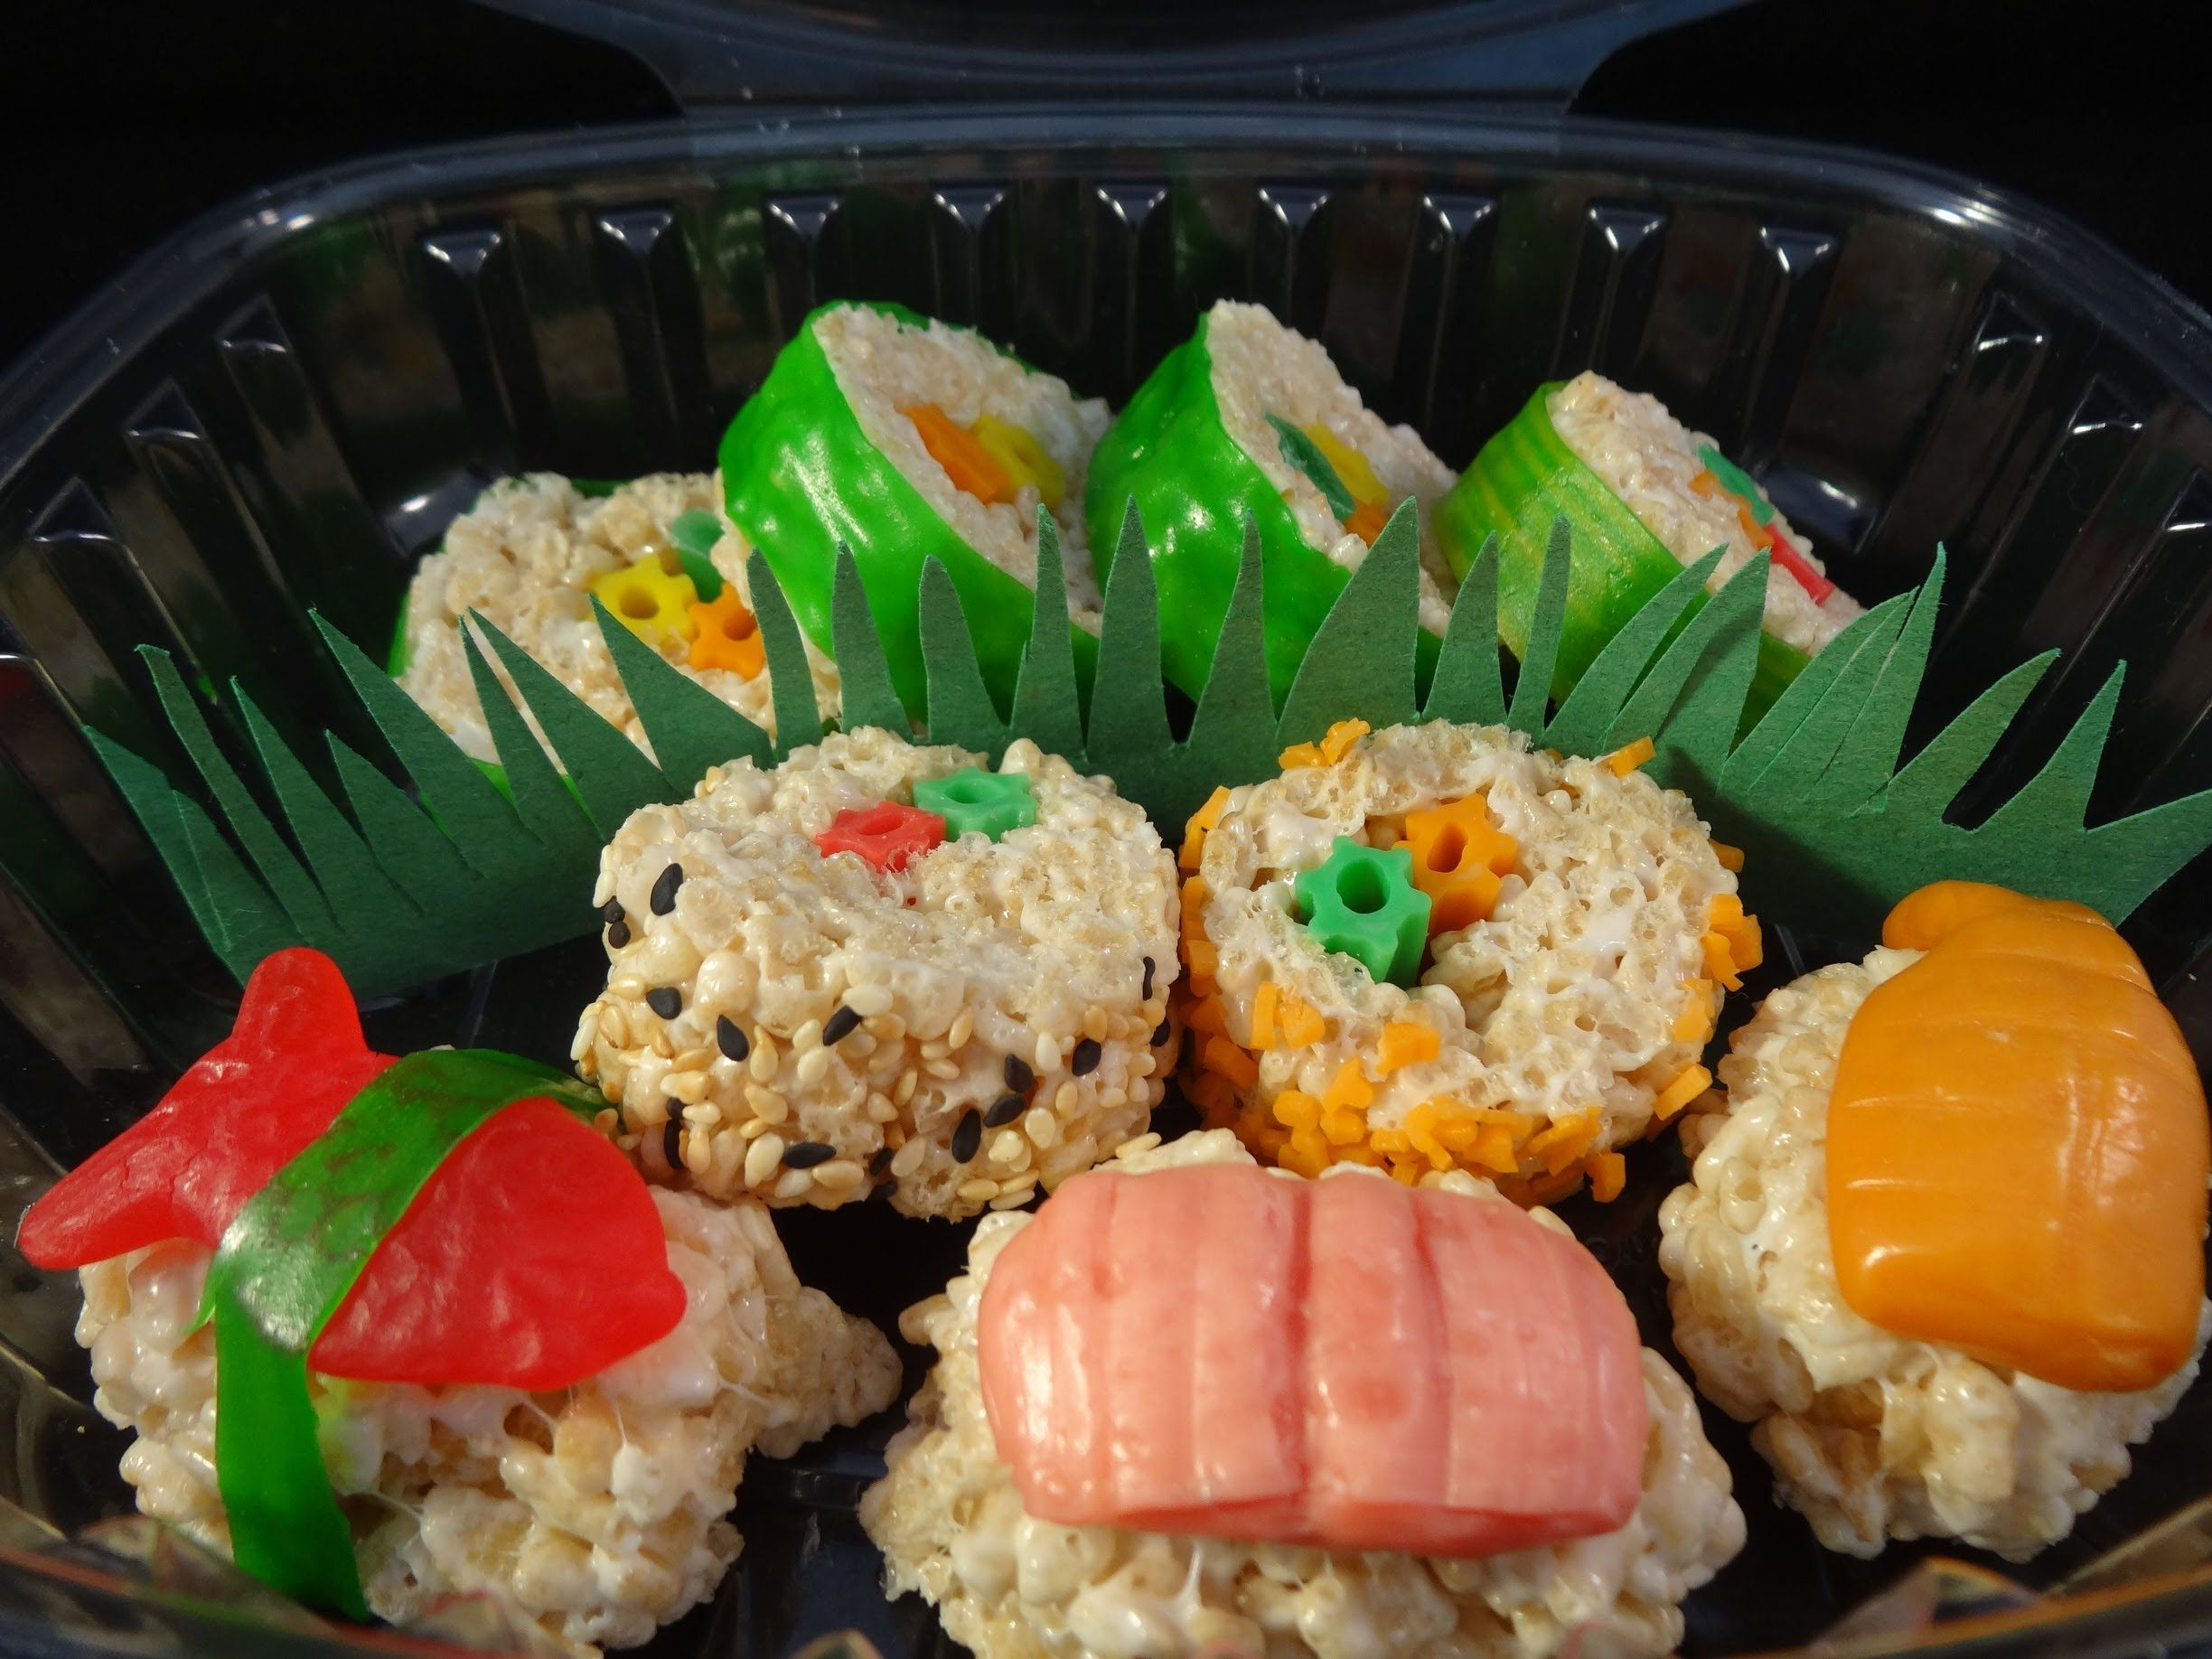 she uses soft candy taffee to shape cooked shrimp and fish shapes for sashimi! #candysushi